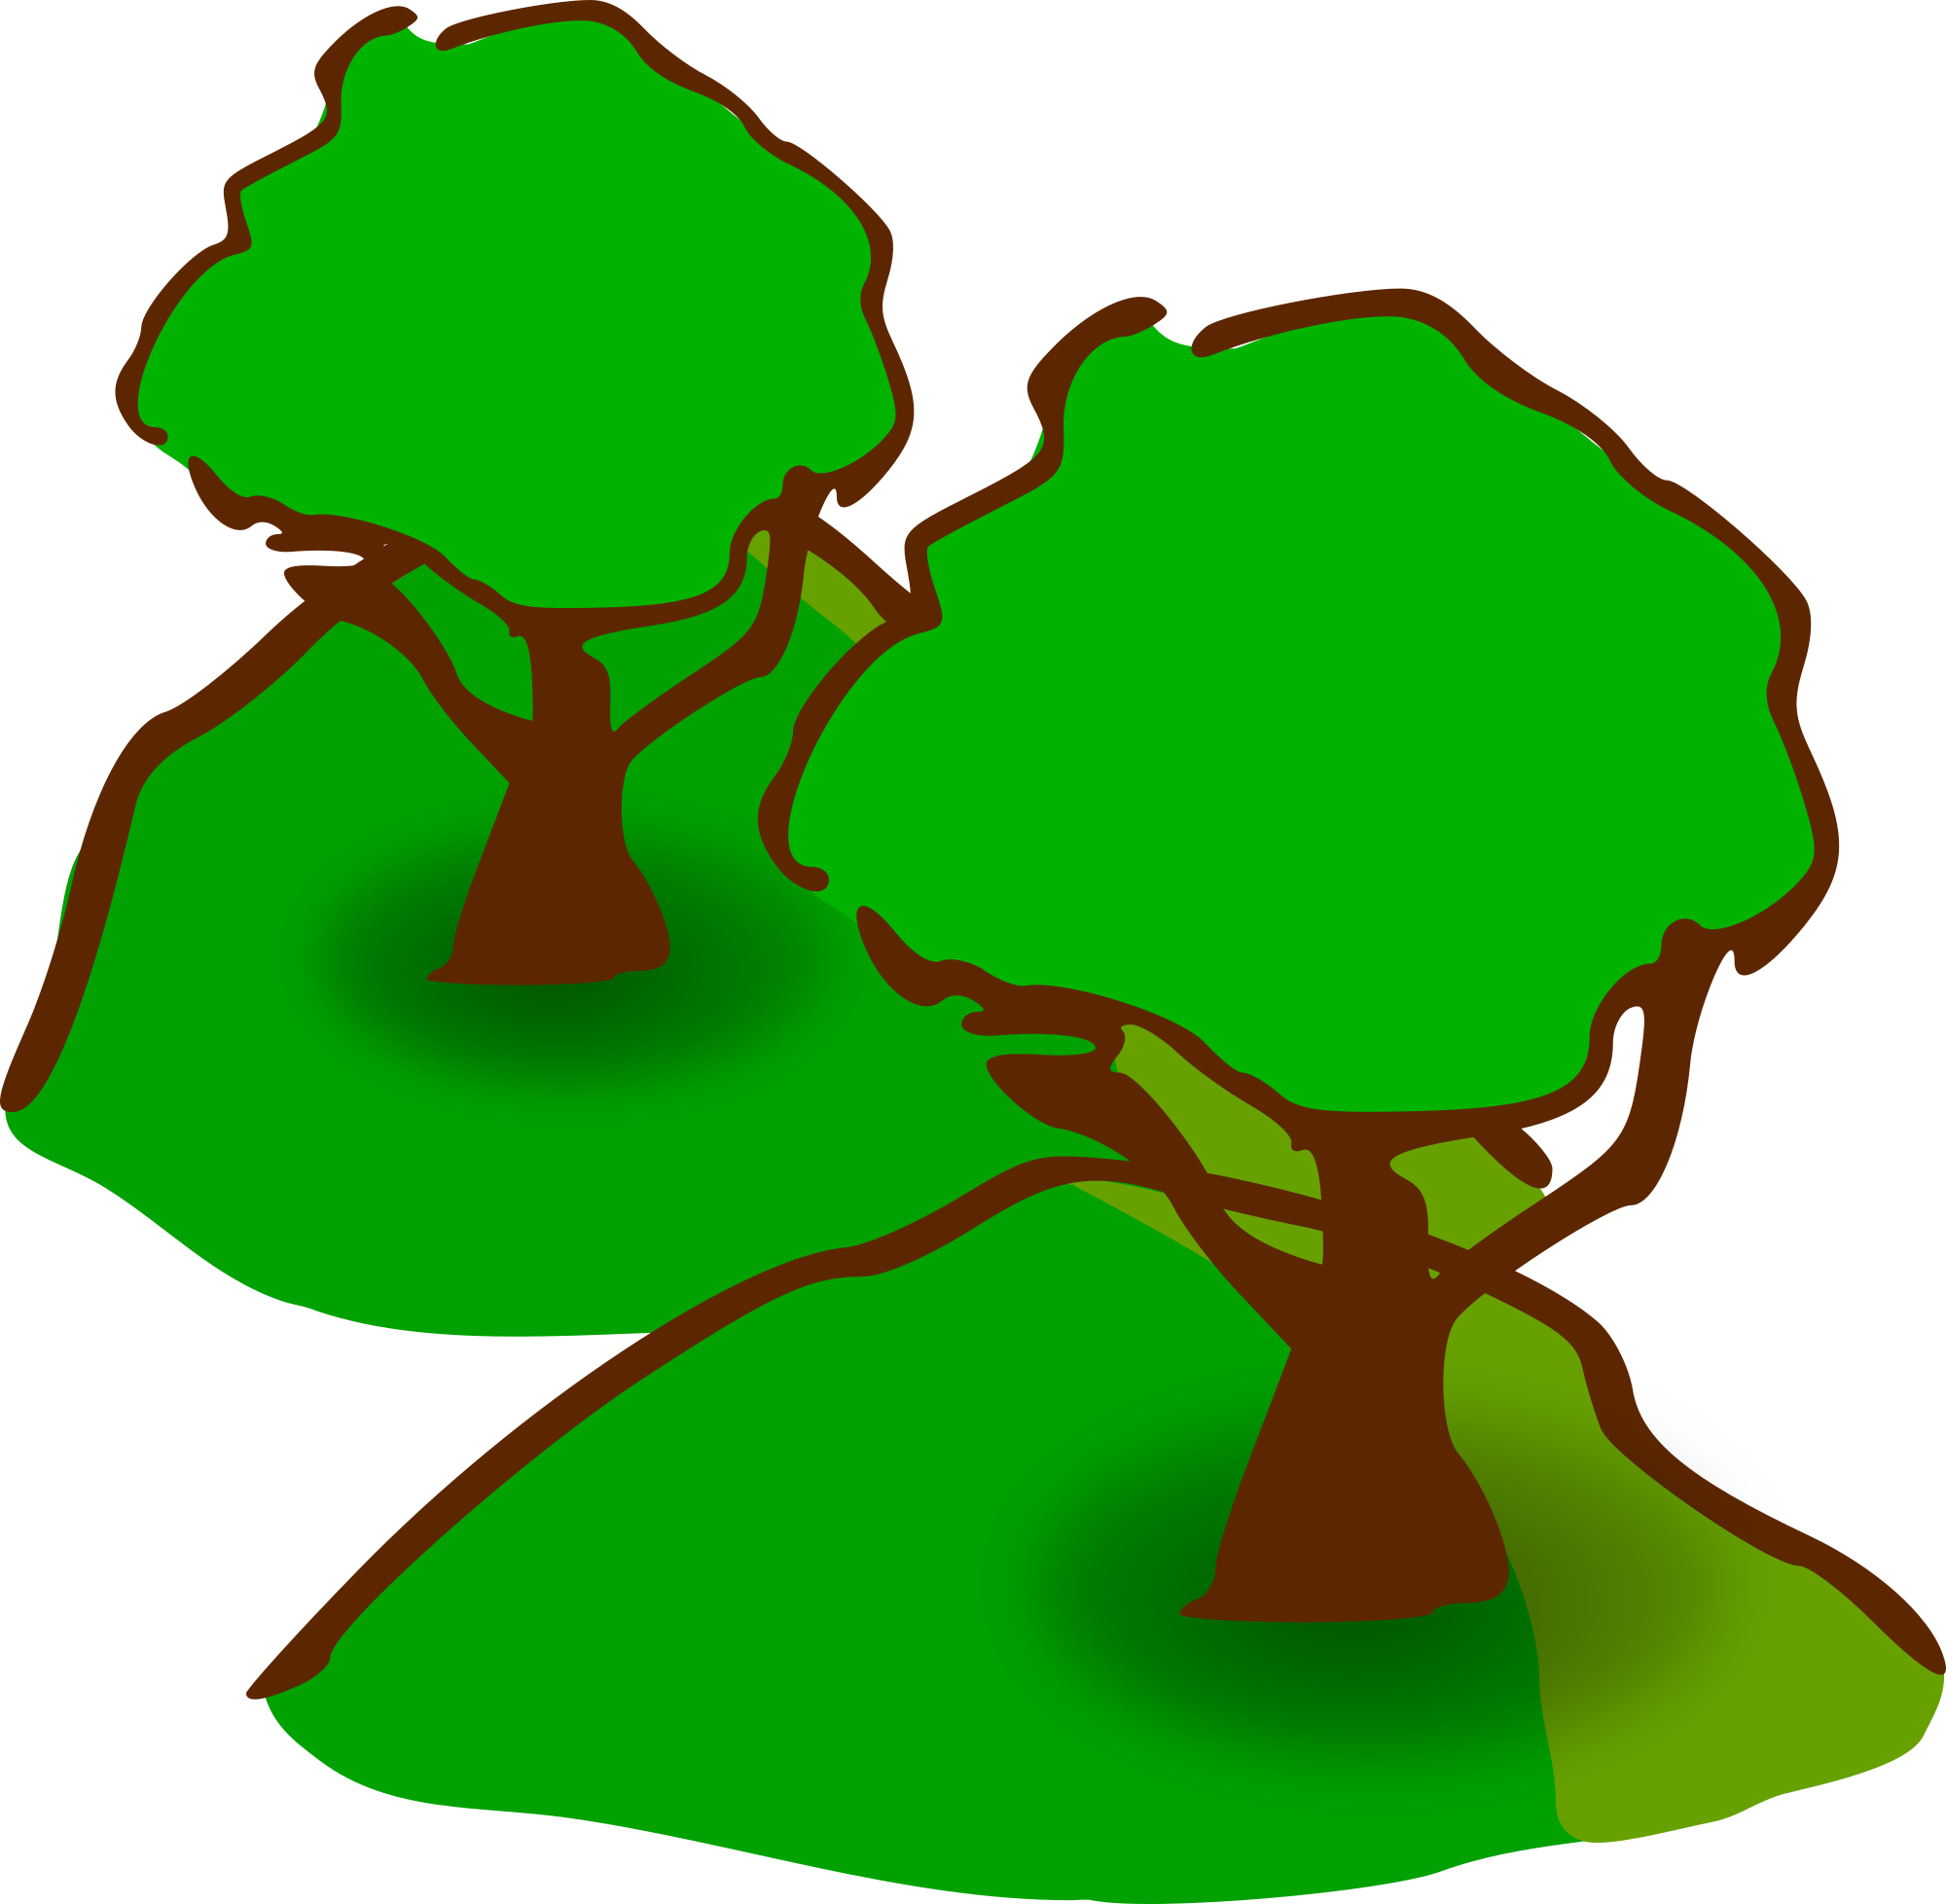 Hill clipart small hill. Hills forested